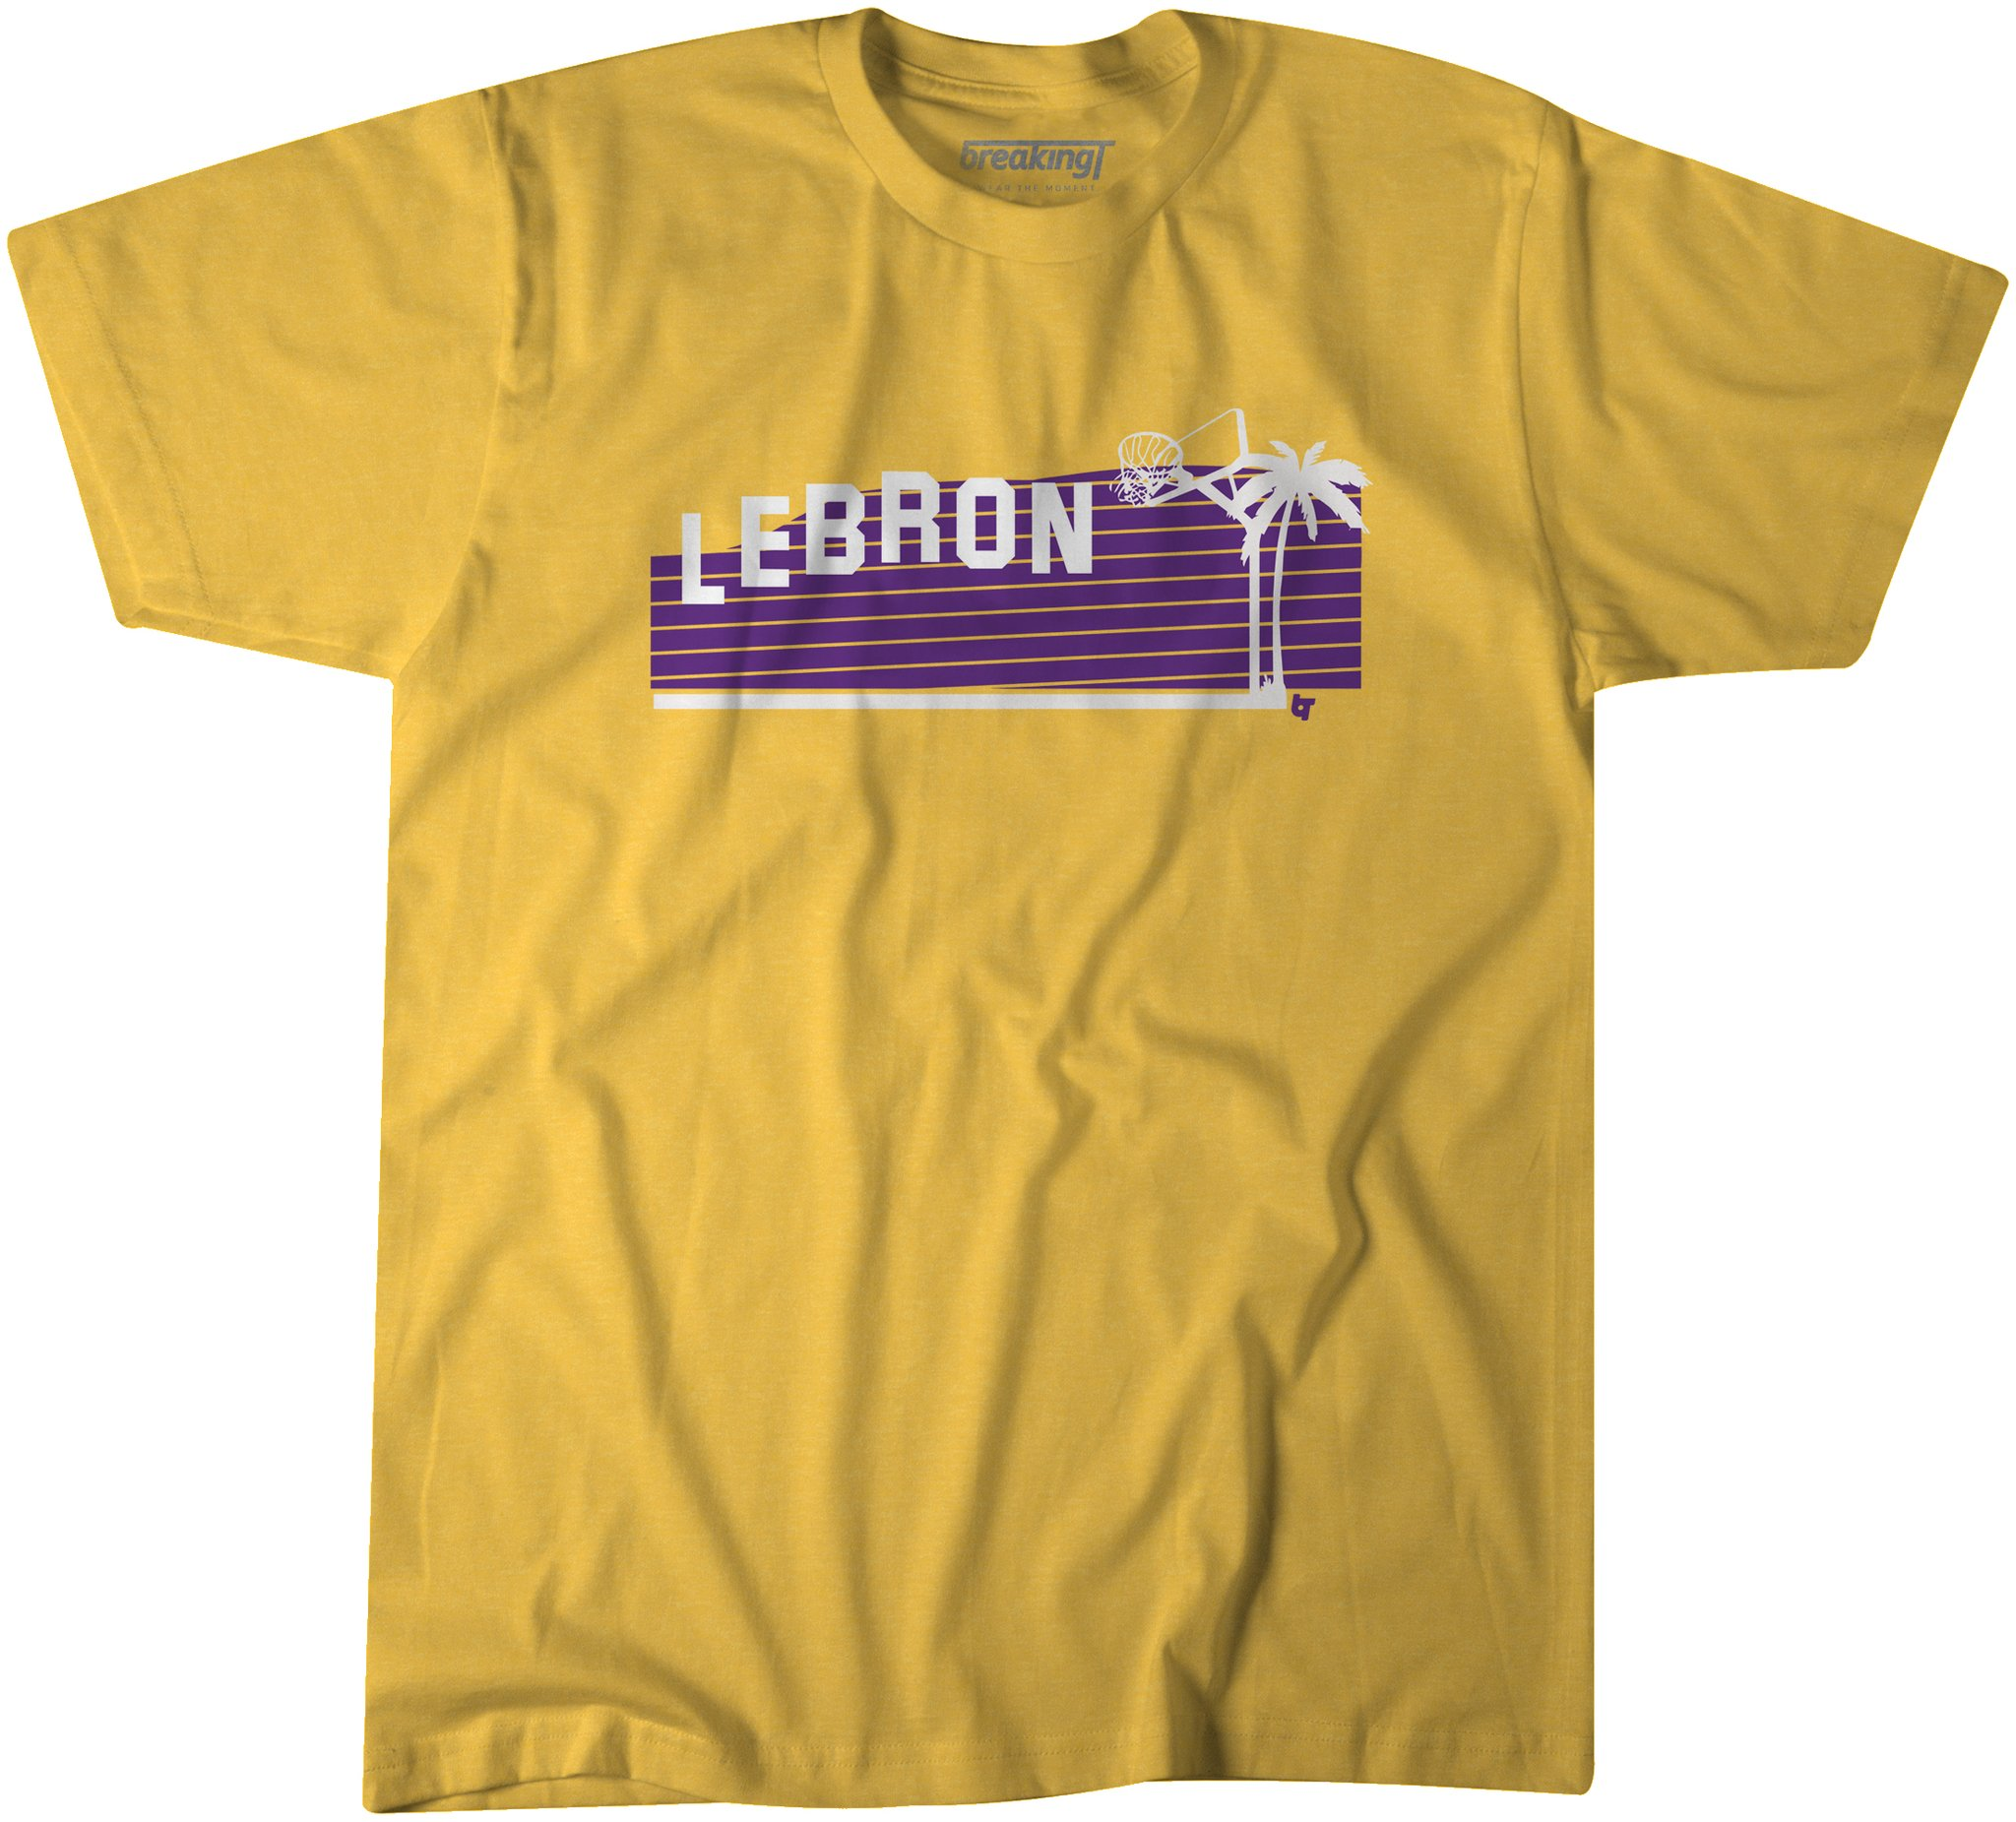 Lebron T Shirt Los Angeles Lakers fans need this LeBron James Hollywood t-shirt